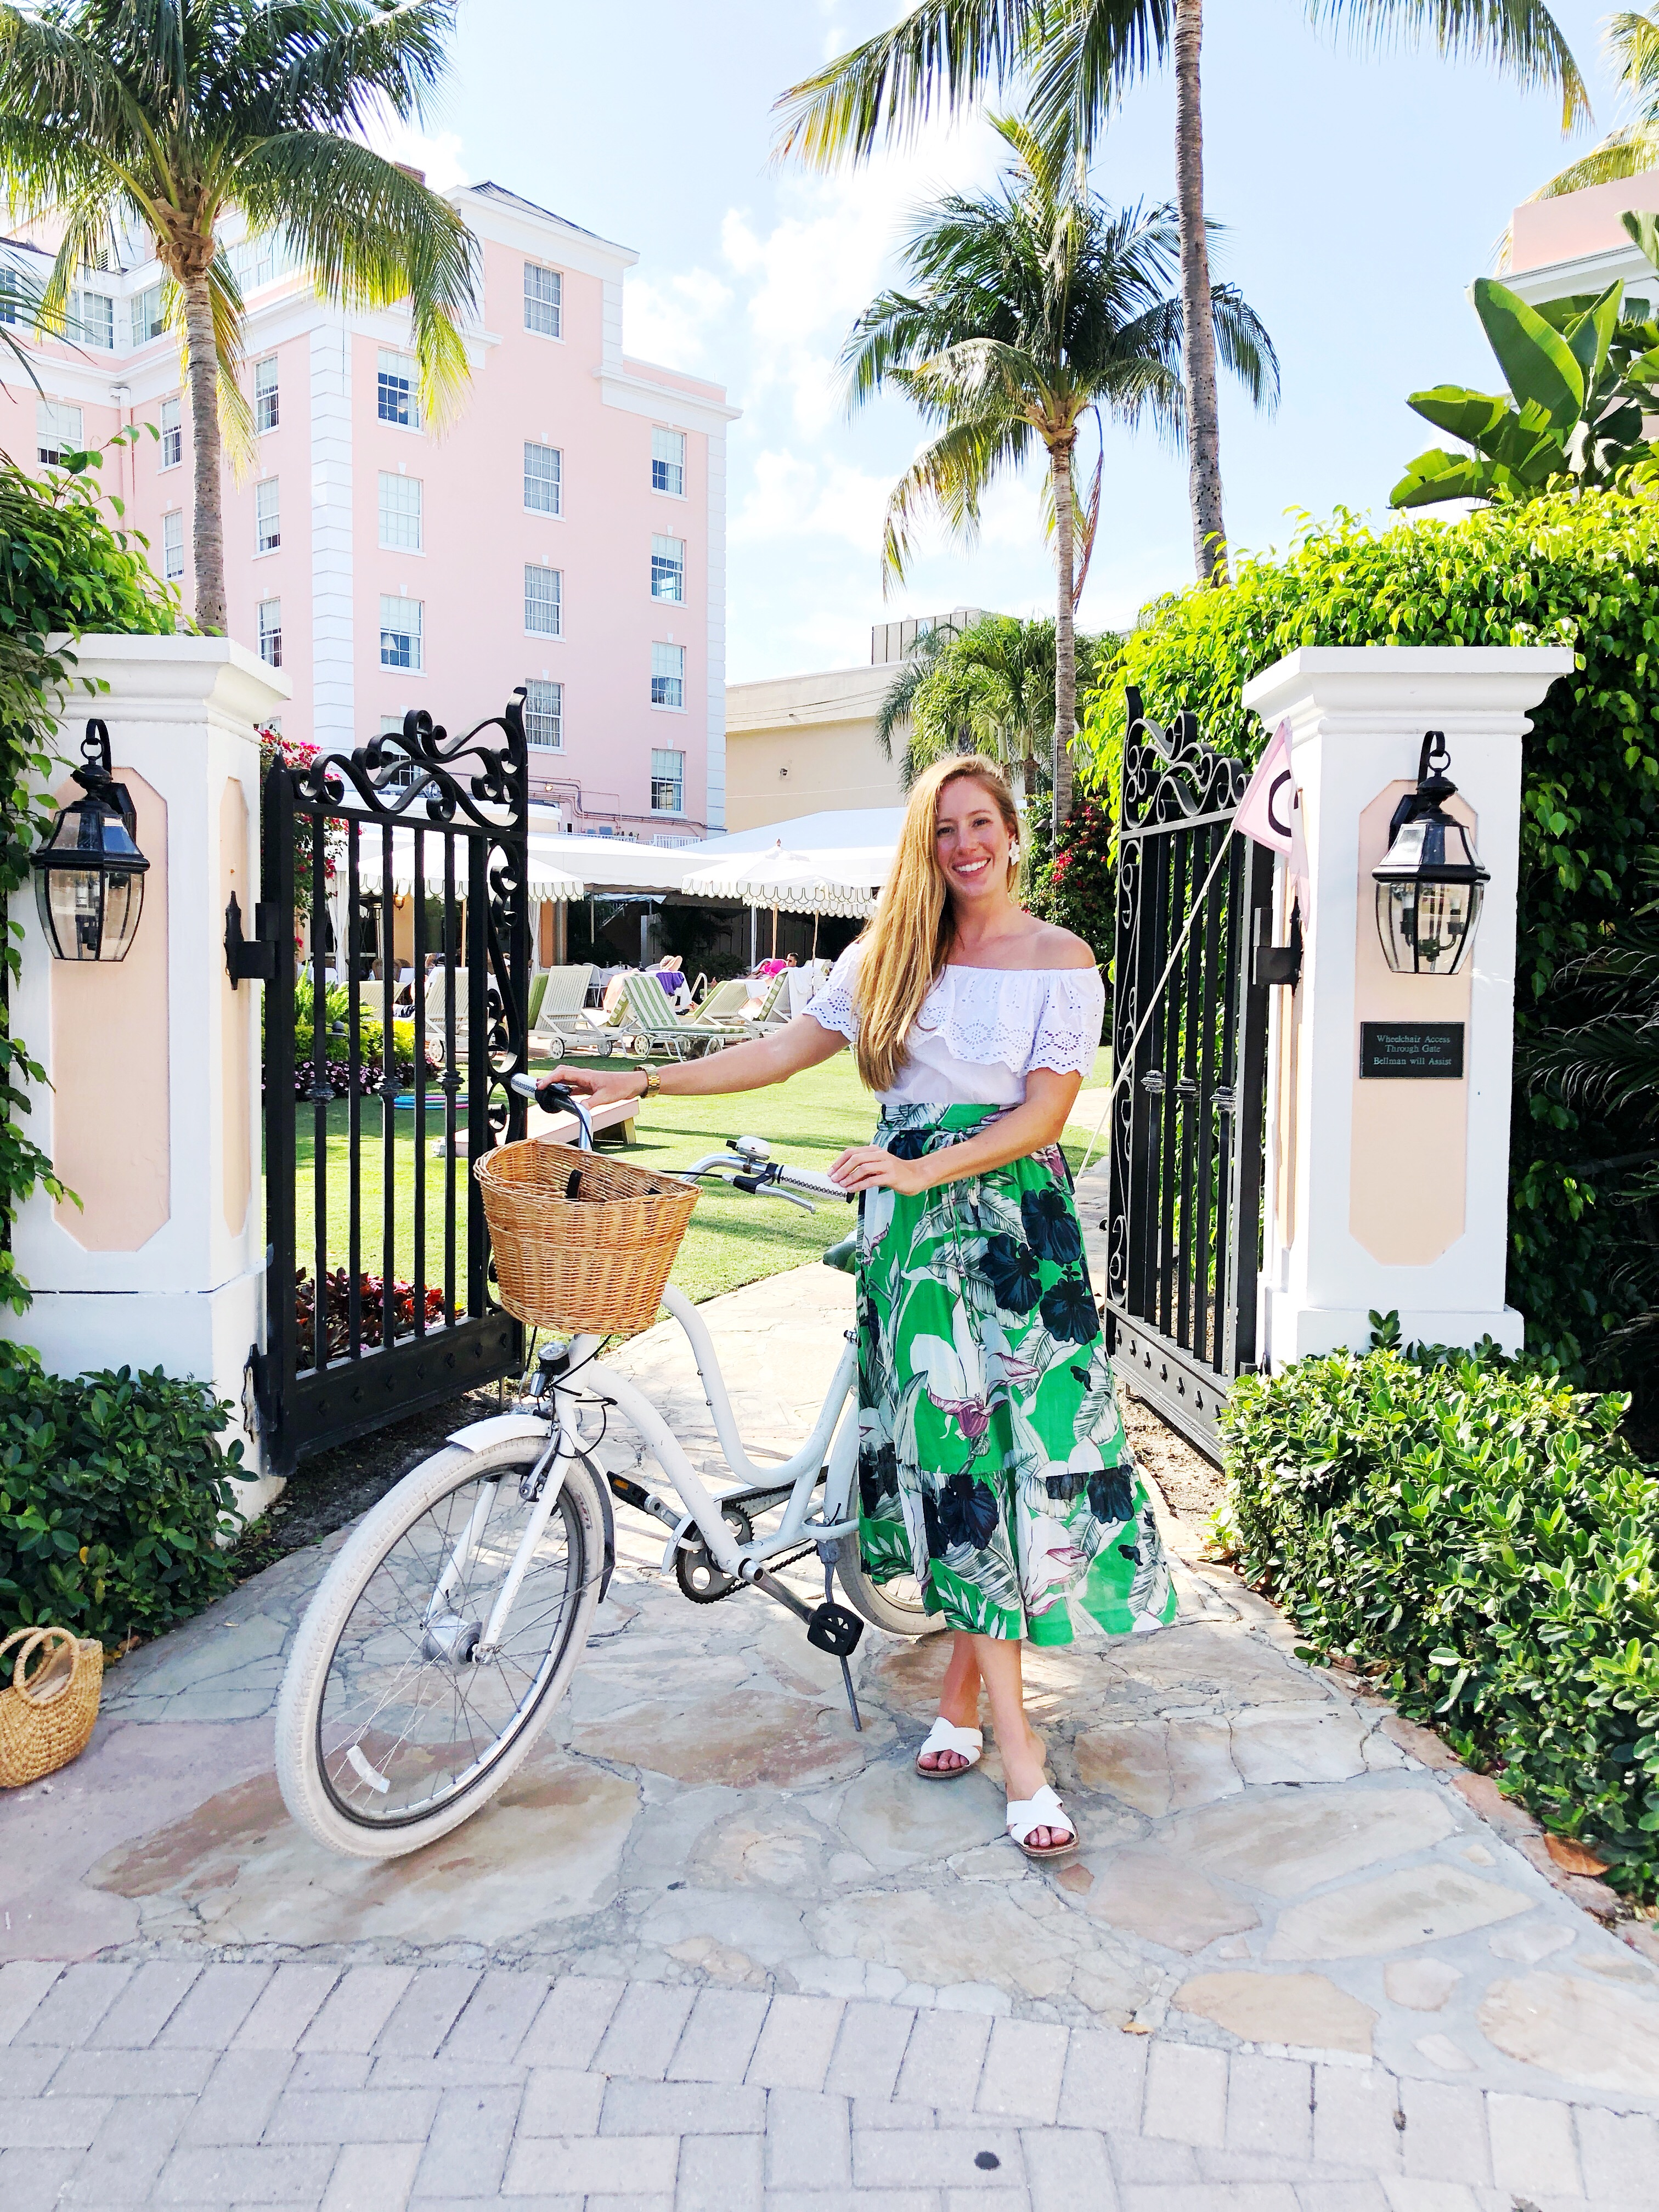 The Colony Hotel, Palm Beach, Florida / A Tropical Outfit for Palm Beach, Florida / What to Wear on a Beach Vacation / What to Wear in Palm Beach / How to Wear a Maxi Skirt / The Colony Hotel Palm Beach - Sunshine Style